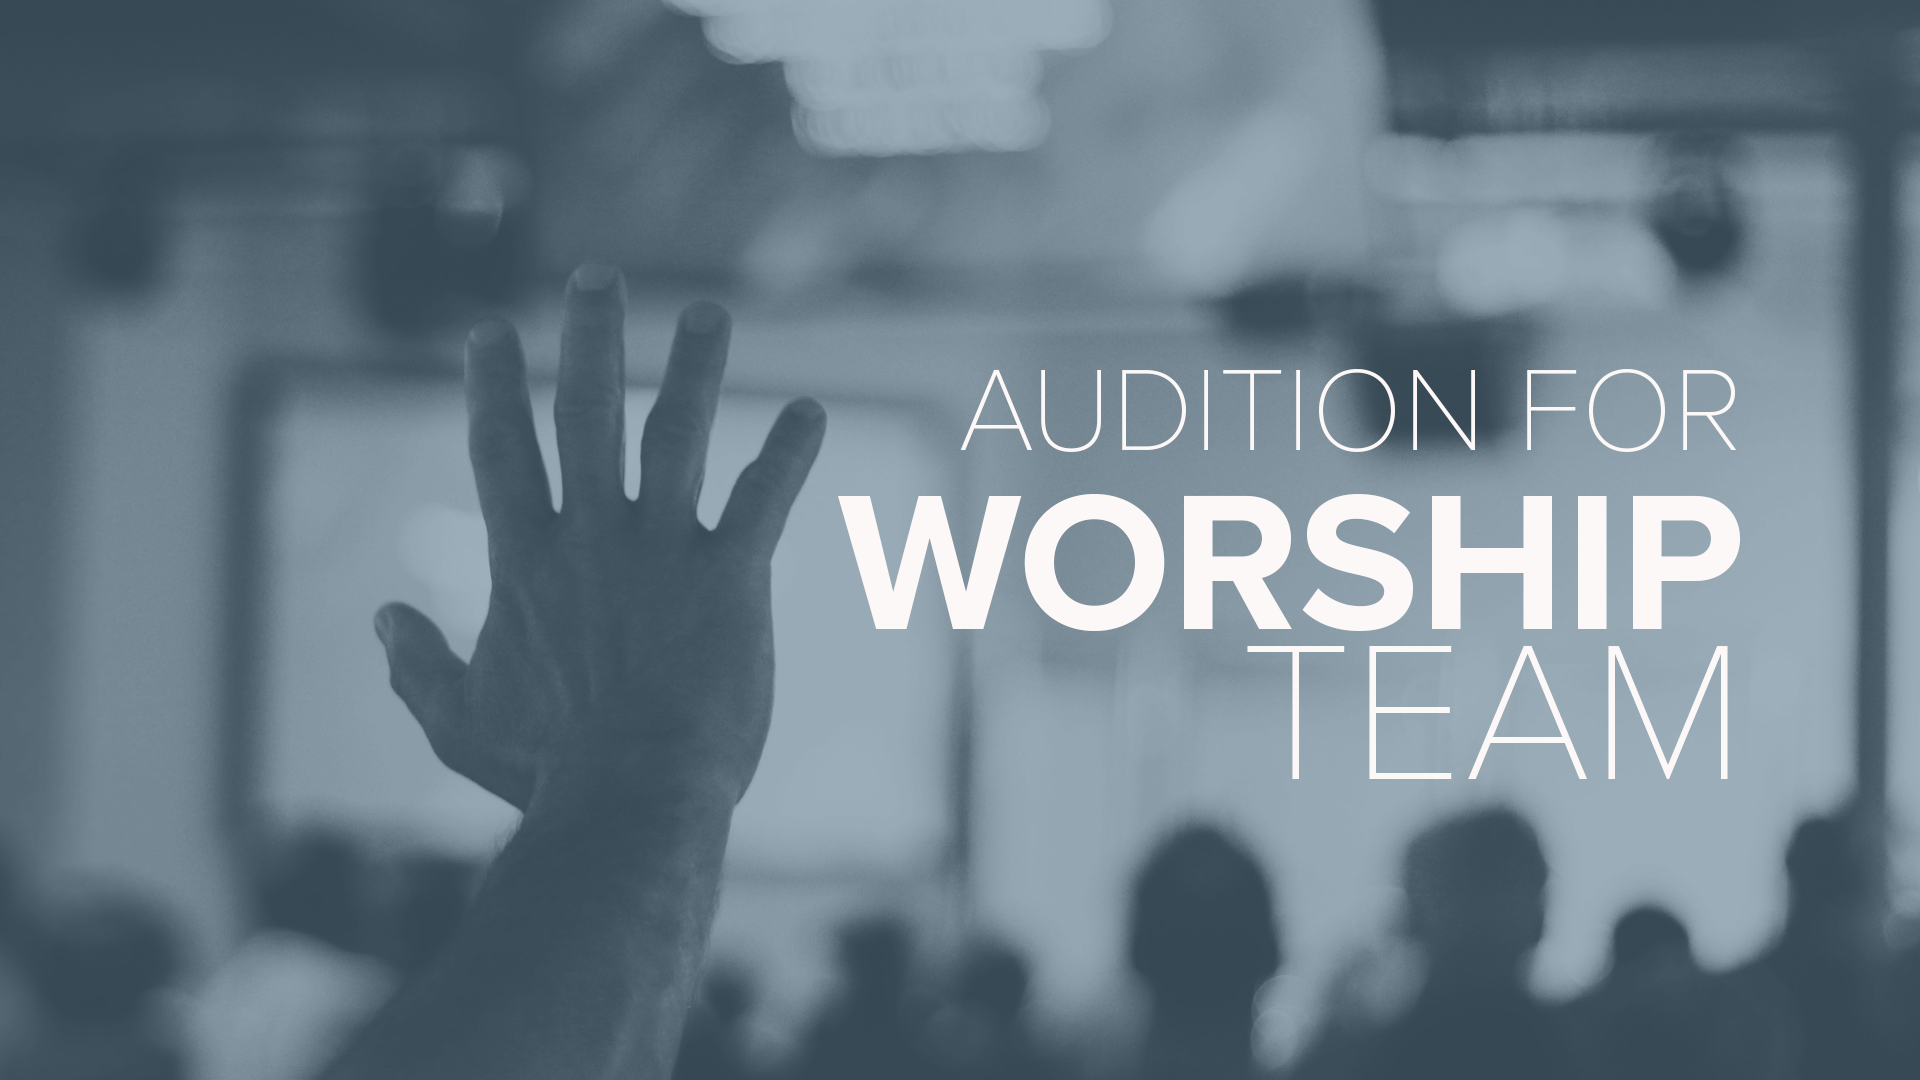 - Worship is a major part of who we are. Having the chance to lead others into the presence of God by utilizing the talents He gave us is an absolute privilege in this life. If you feel the Lord calling you to join the worship team Sign Up for an Audition.